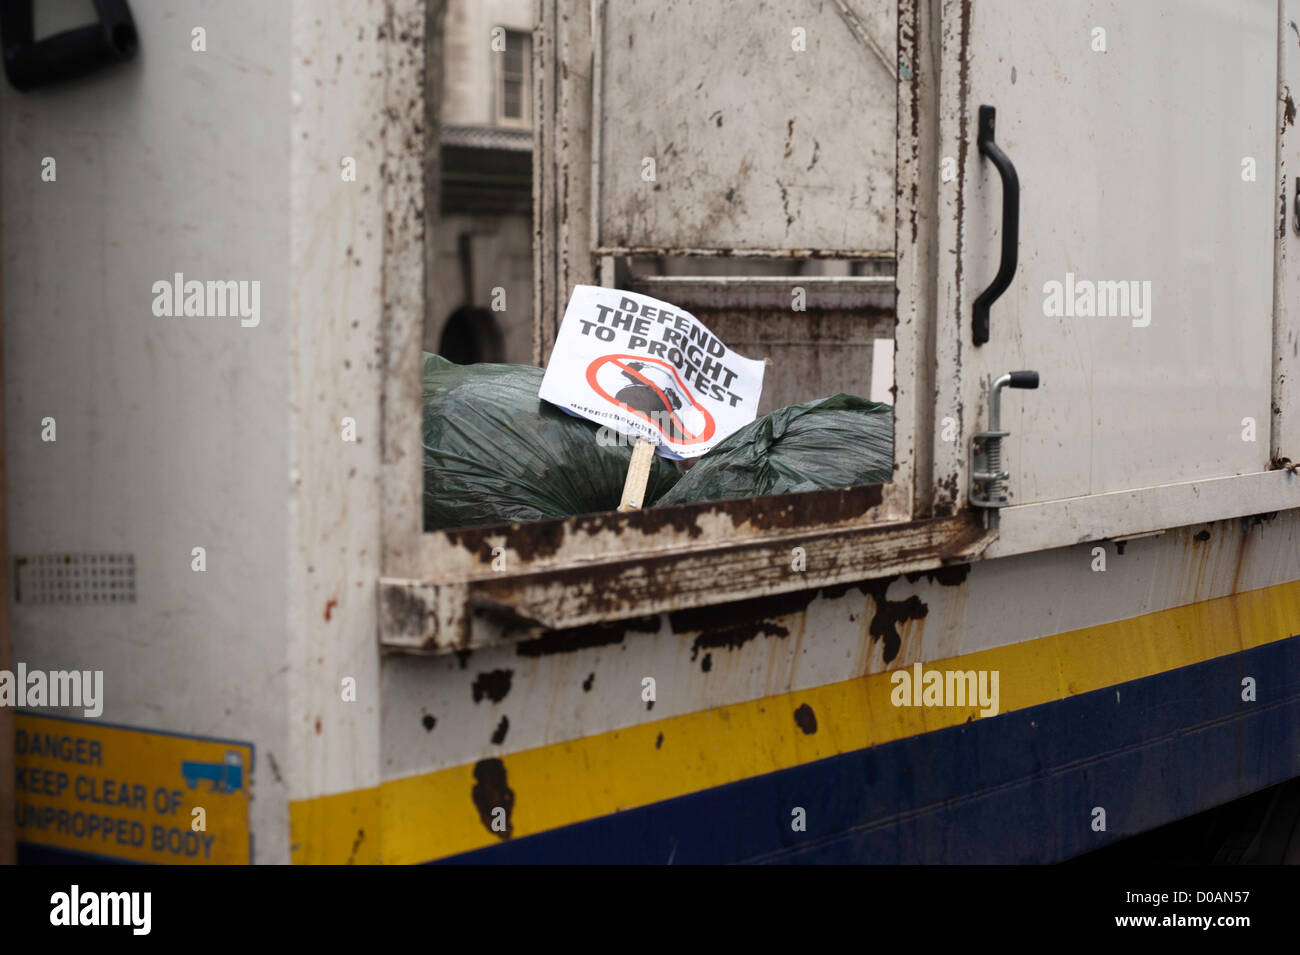 London, UK - 21 November 2012: a sign reading 'defend the right to protest' lays in a cleaning truck after - Stock Image